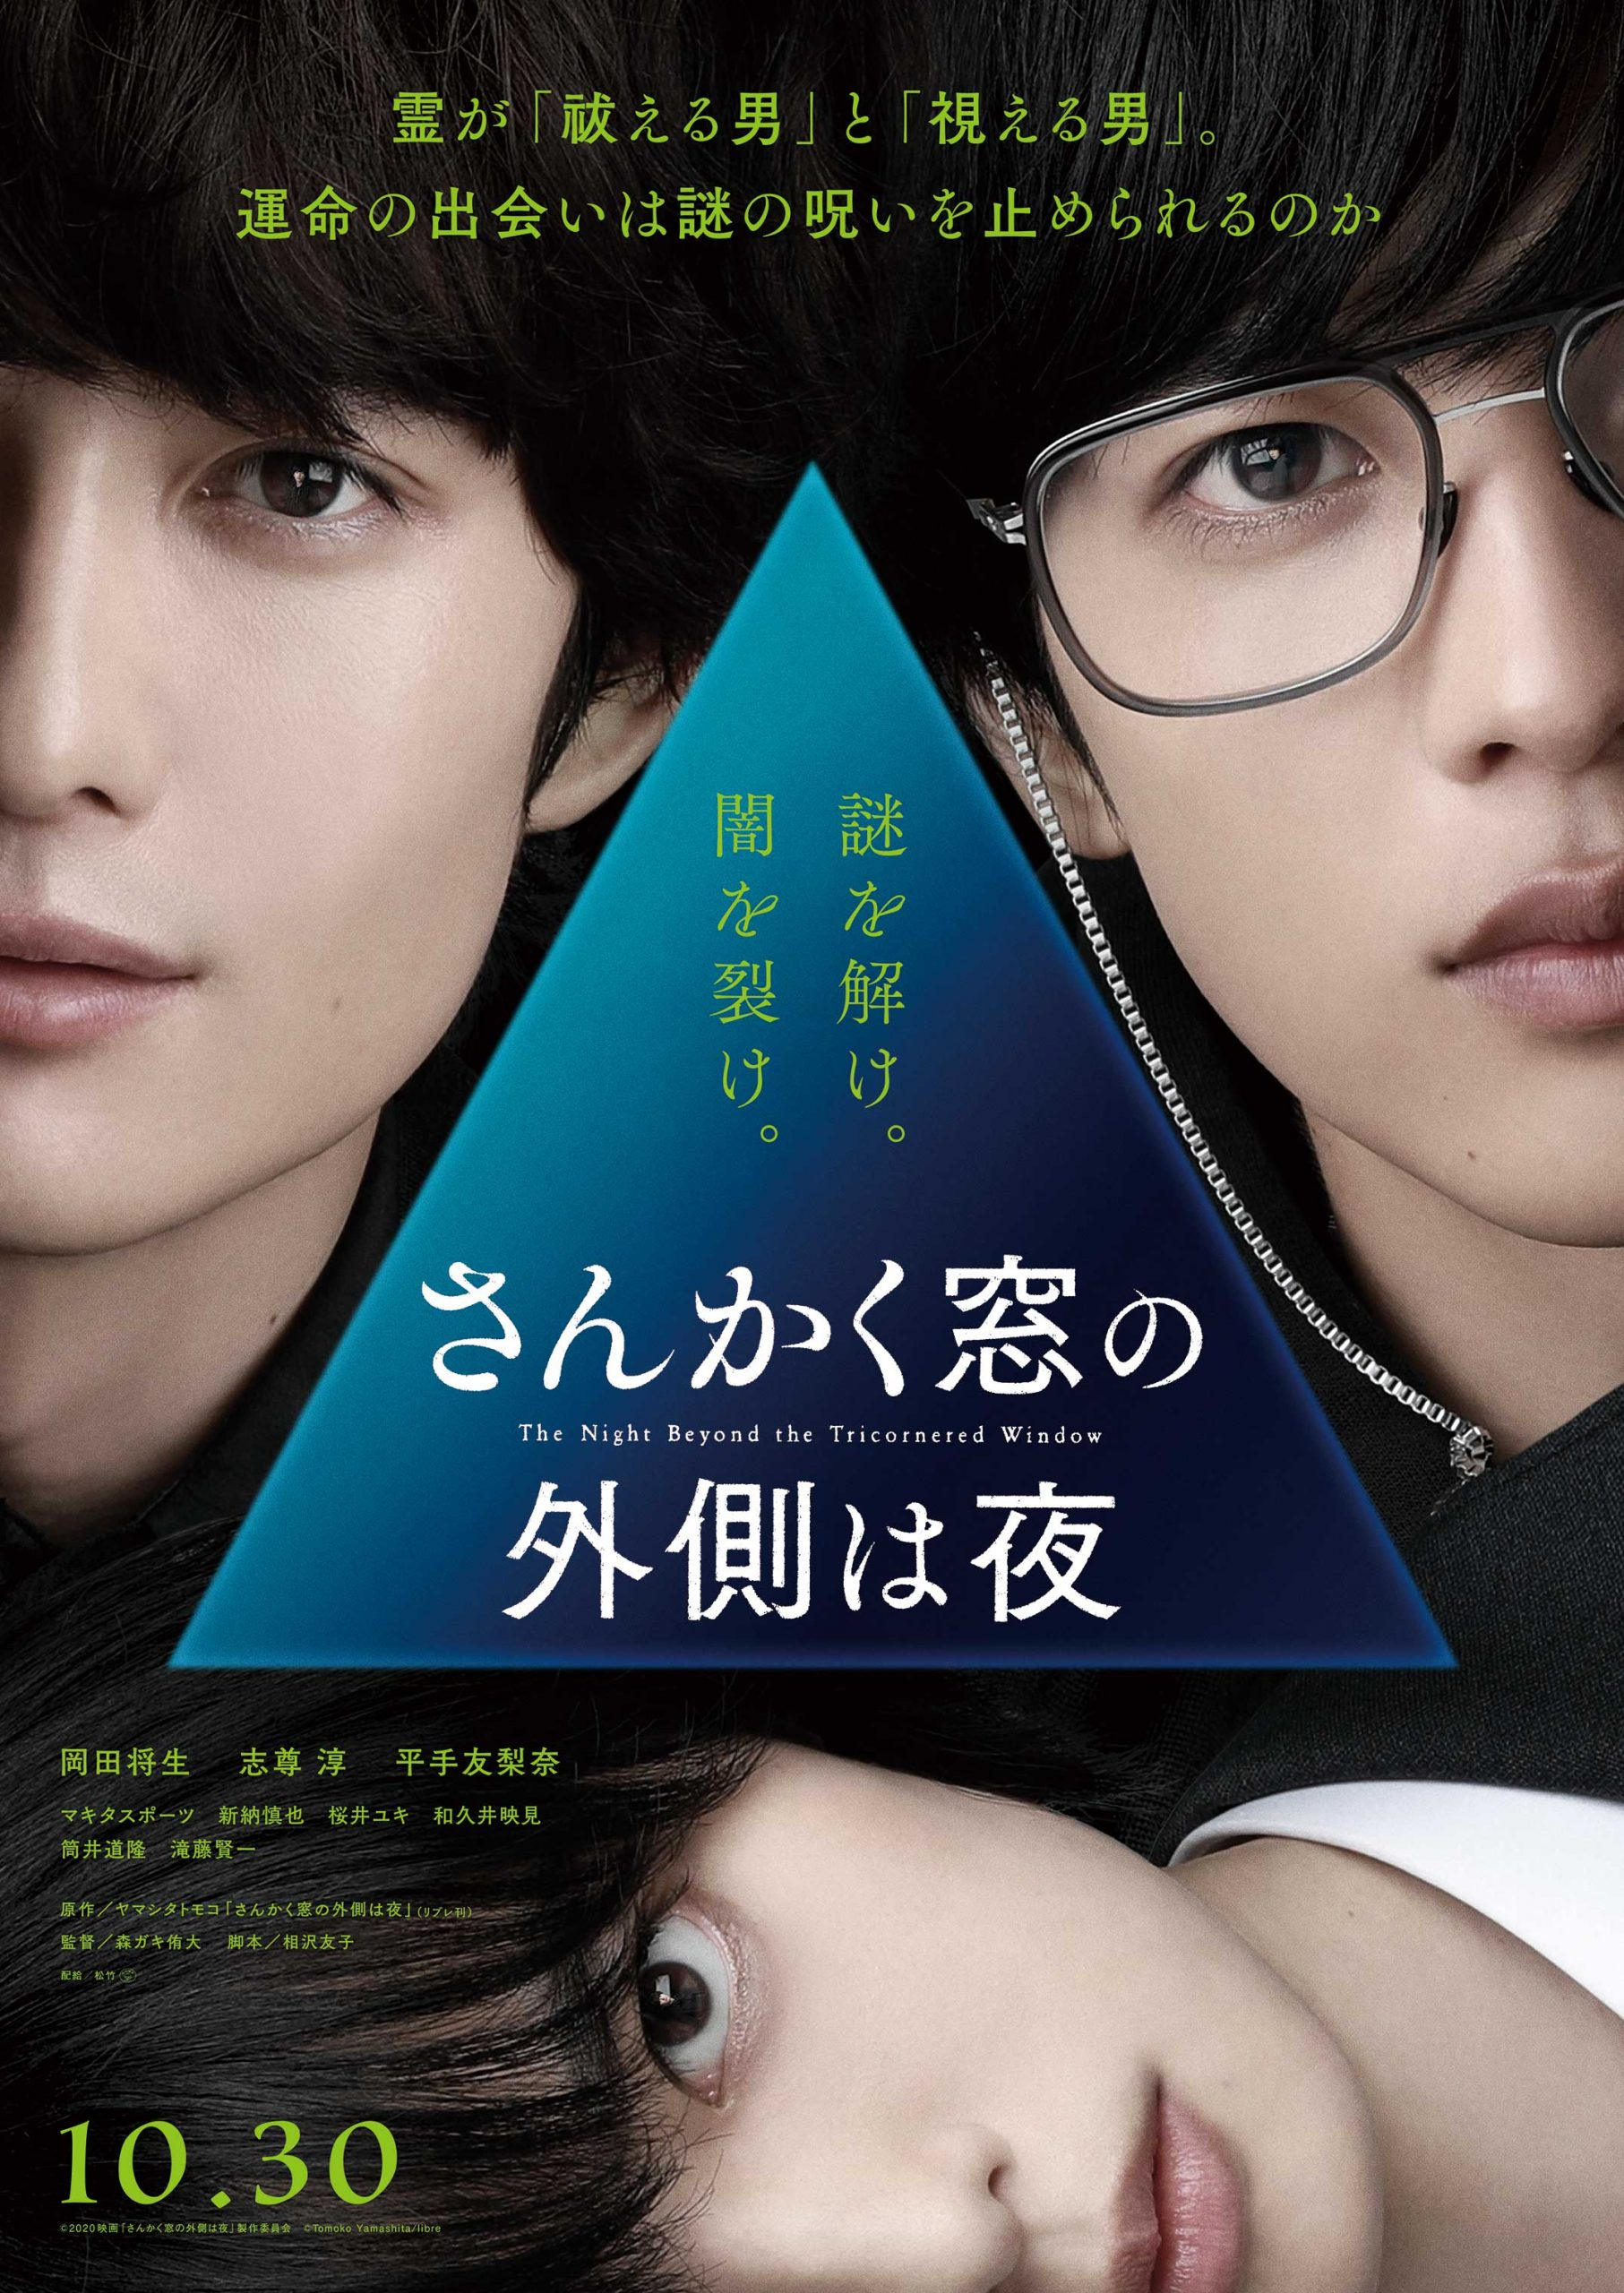 Live-Action The Night Beyond the Tricornered Window boys-love film teaser